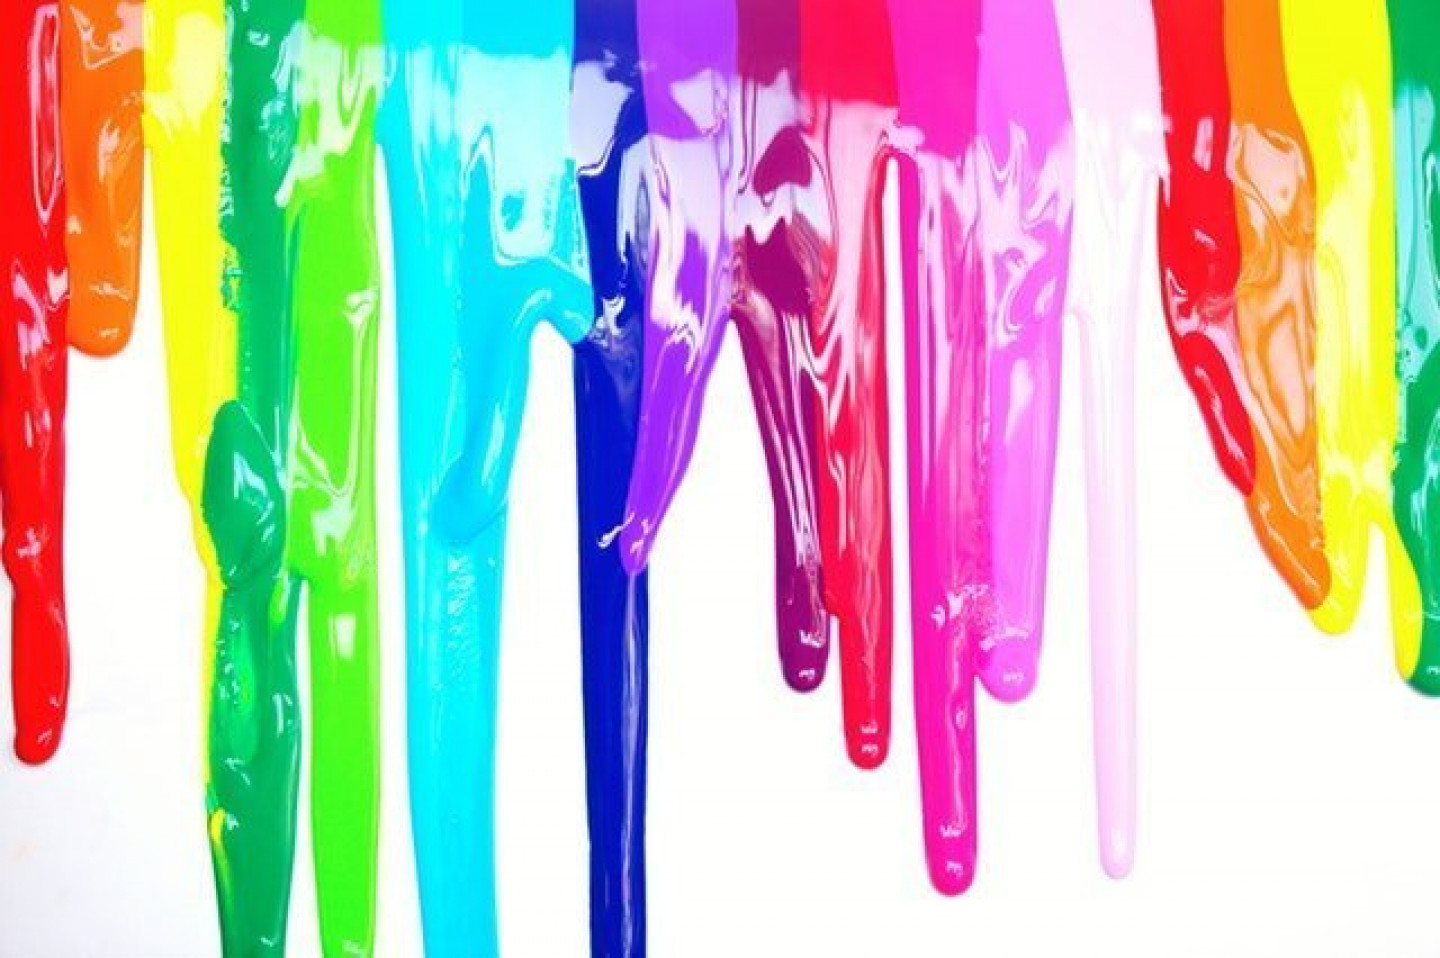 artistic-arts-and-crafts-colorful-1212407